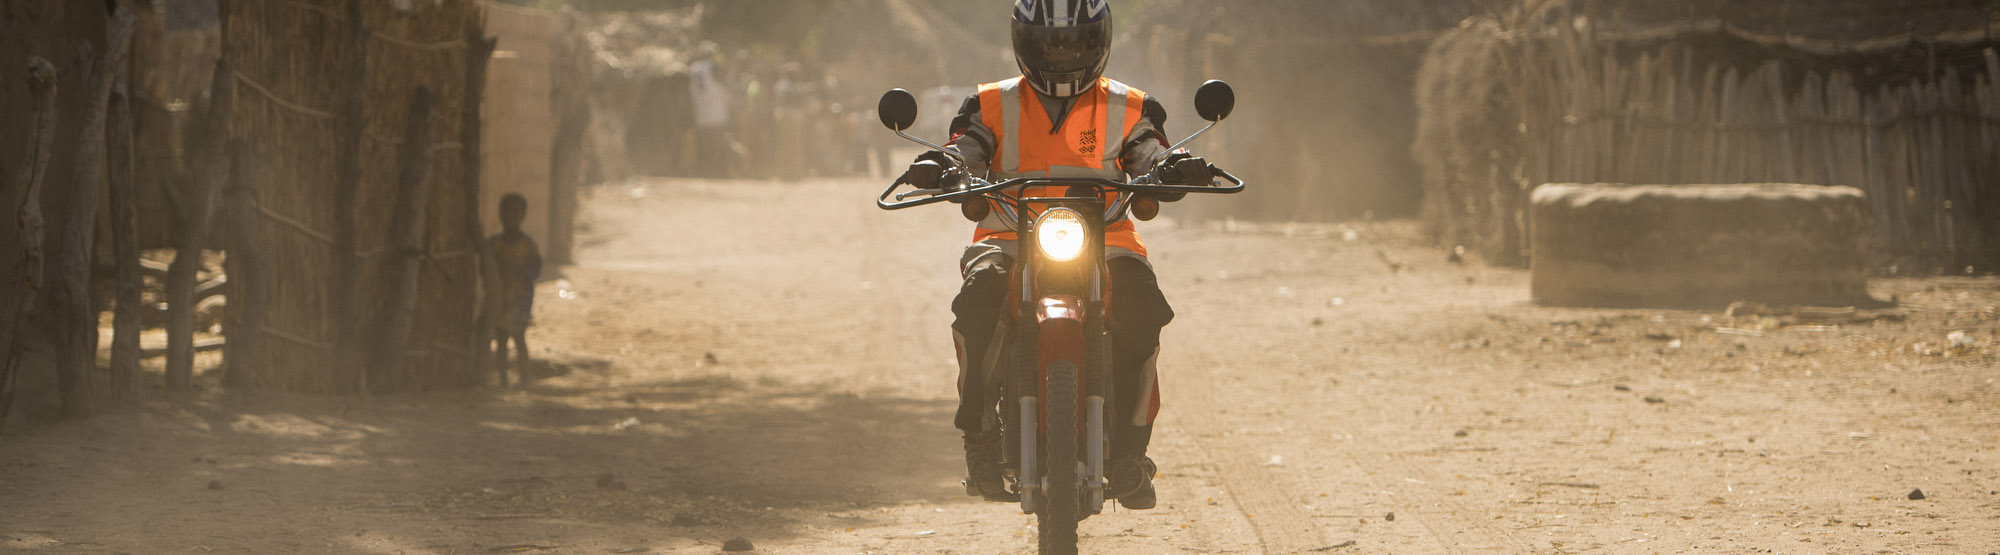 Healthworker riding motorcycle, The Gambia